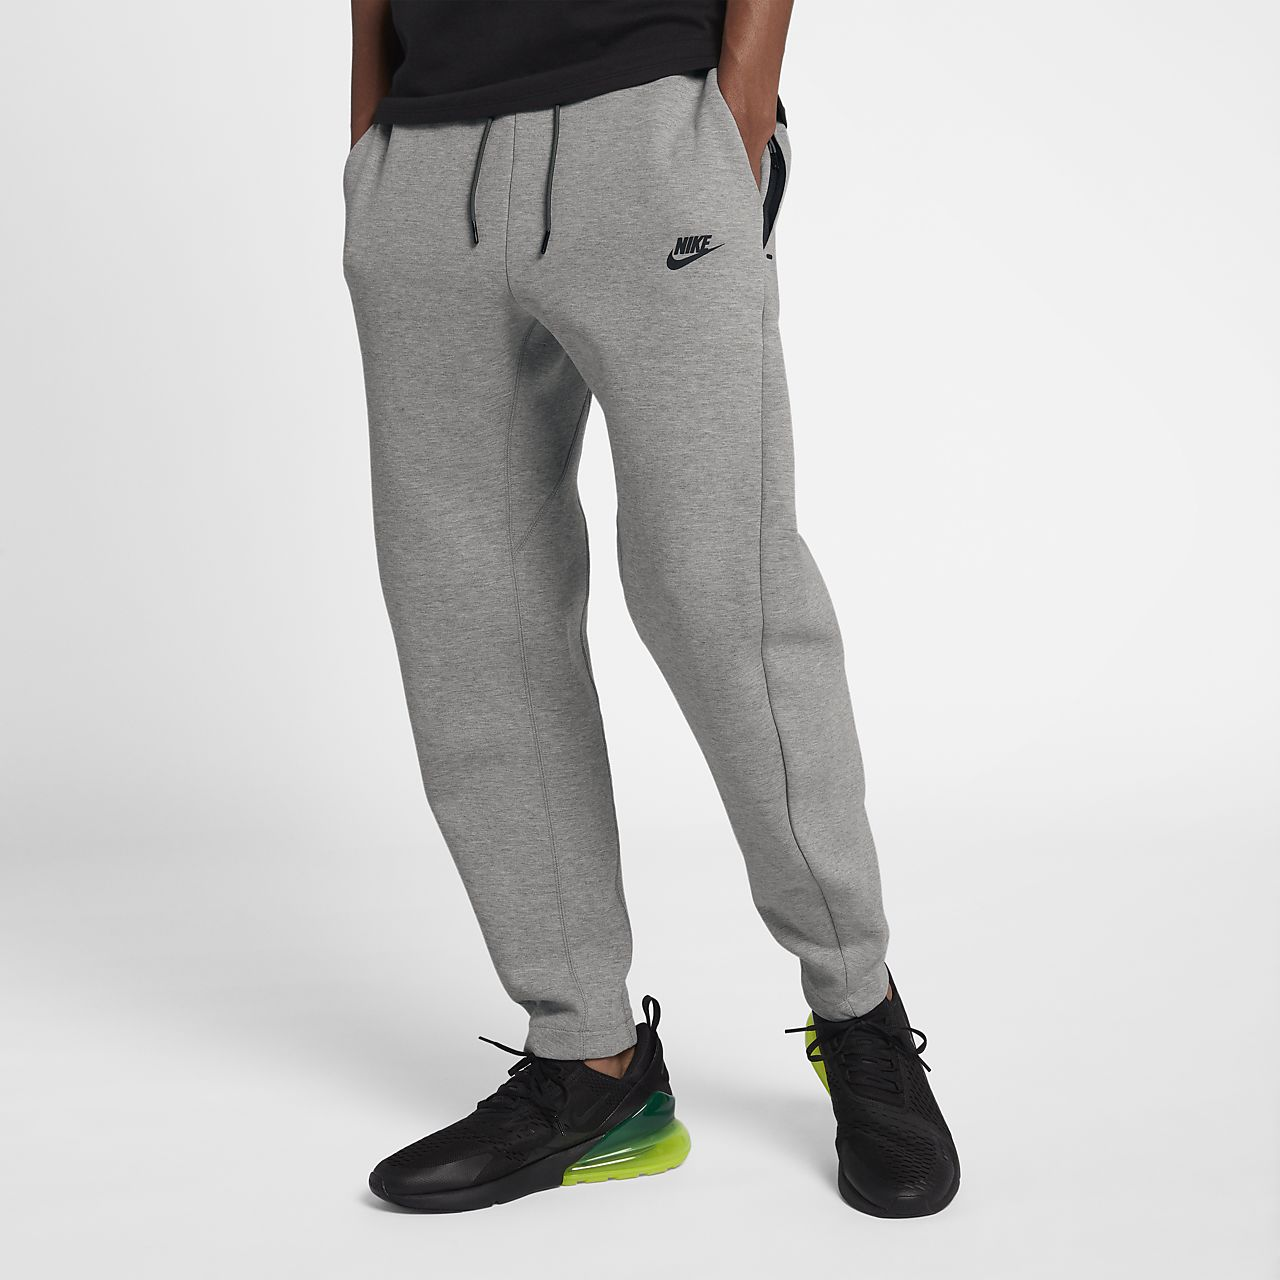 b01248f27bbaf Nike Sportswear Tech Fleece Men's Pants. Nike.com